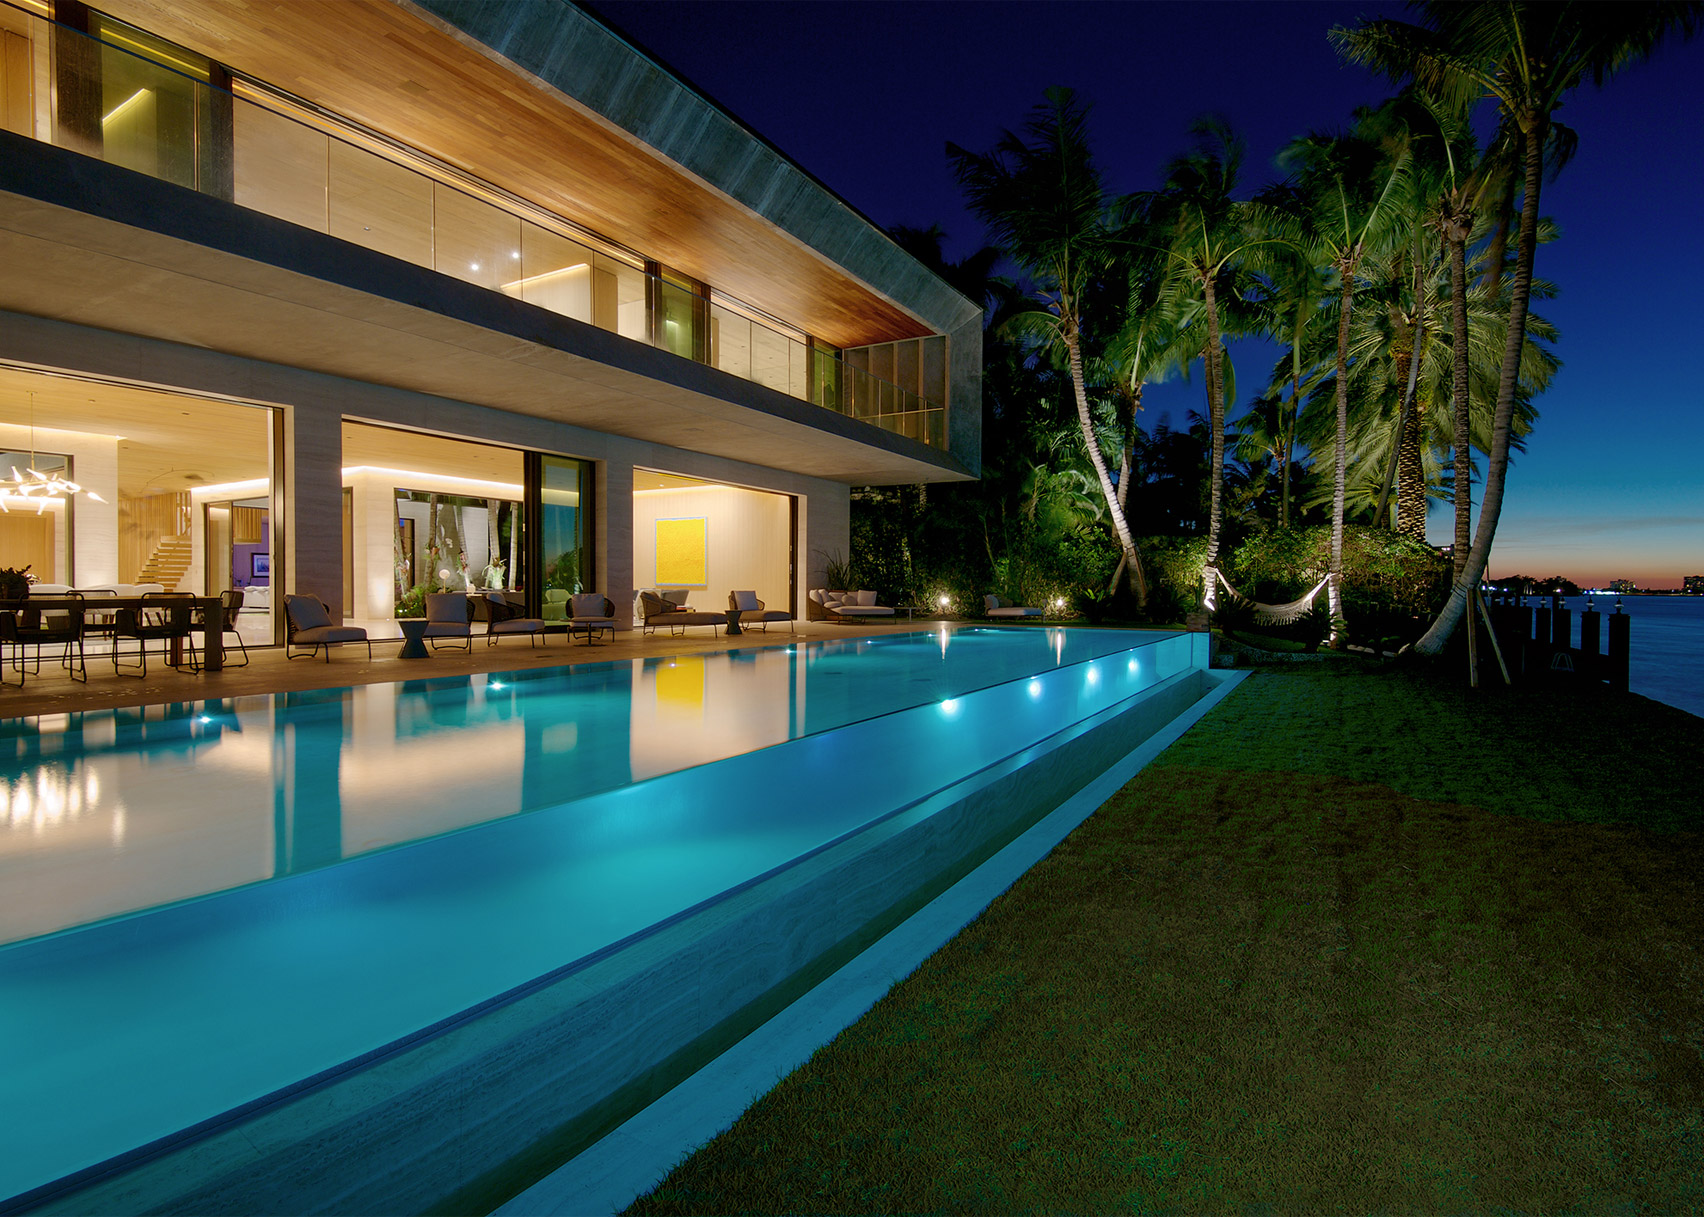 Bal Harbour House by Chad Oppenheim, FAIA of Oppenheim Architecture in Bal Harbour, Florida. Photograph by Karen Fuchs